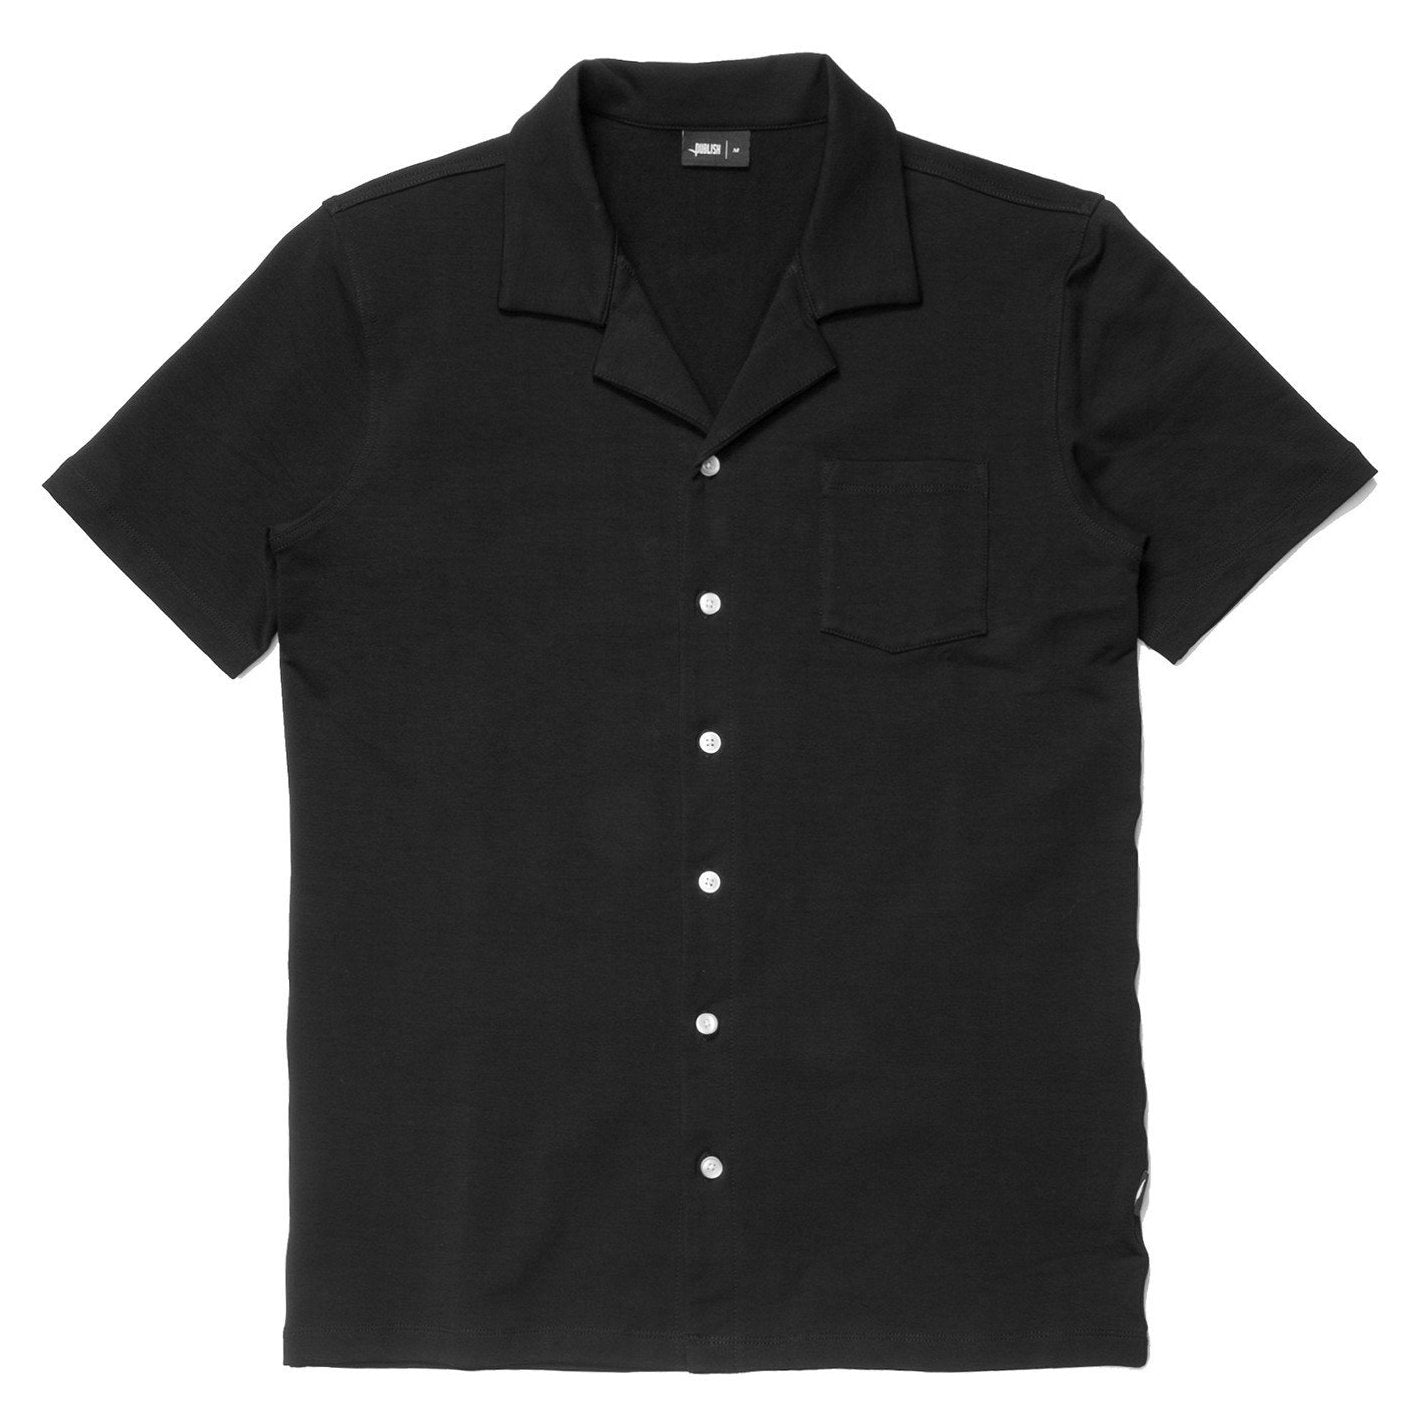 Feregrino Button Up - Black